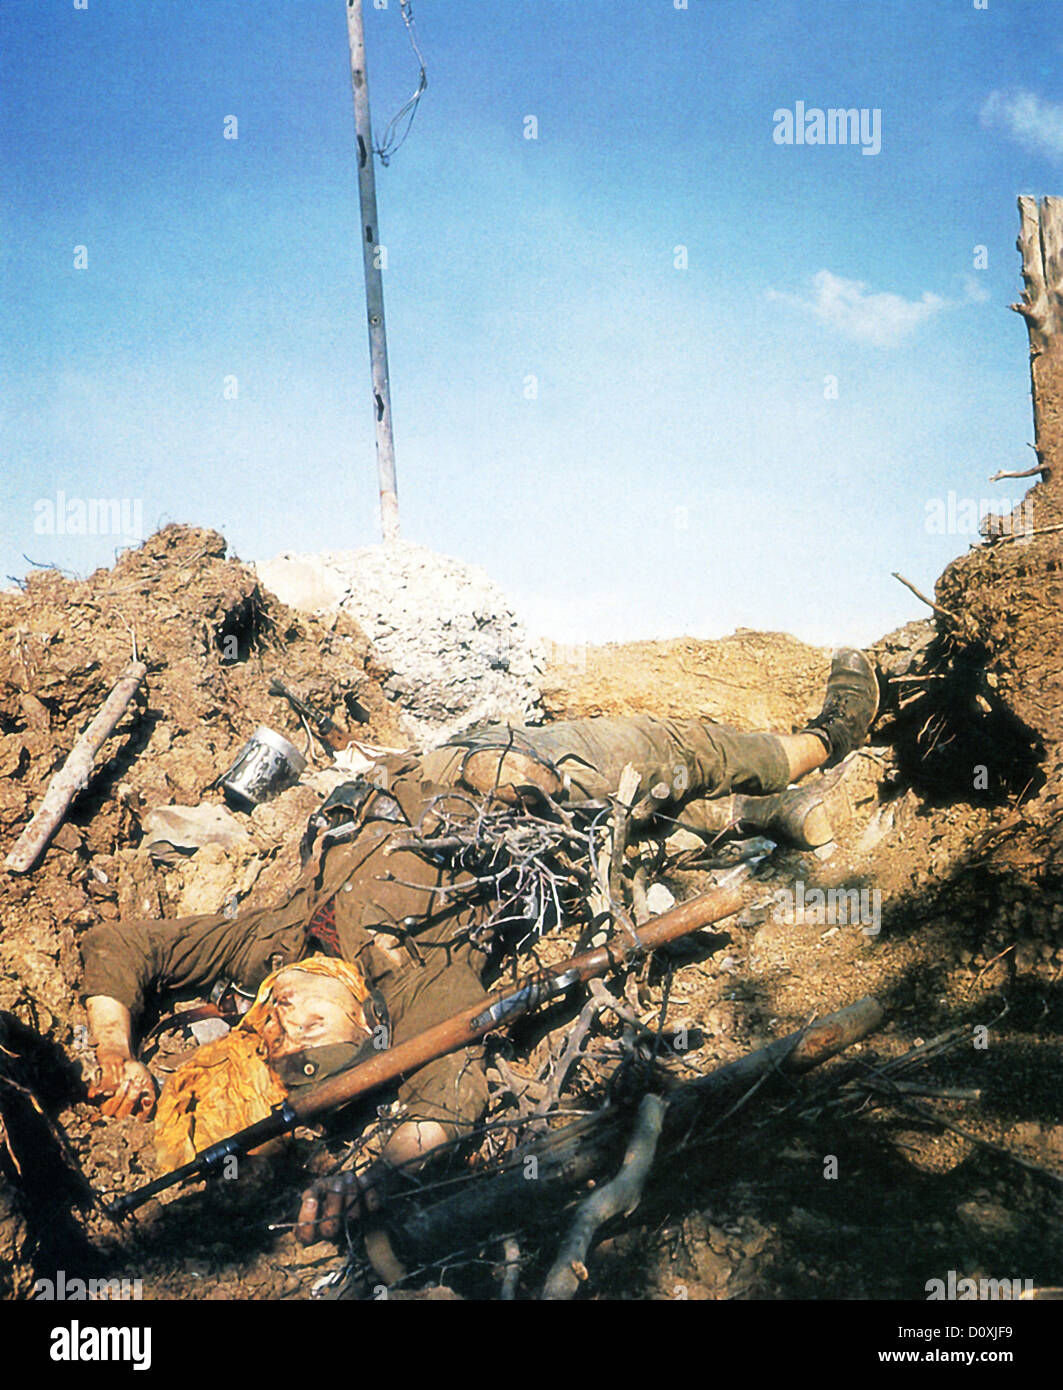 World War 2, Italy, dead, German, soldier, Wehrmacht, gun, World War II, Southern Italy, 1943 - Stock Image